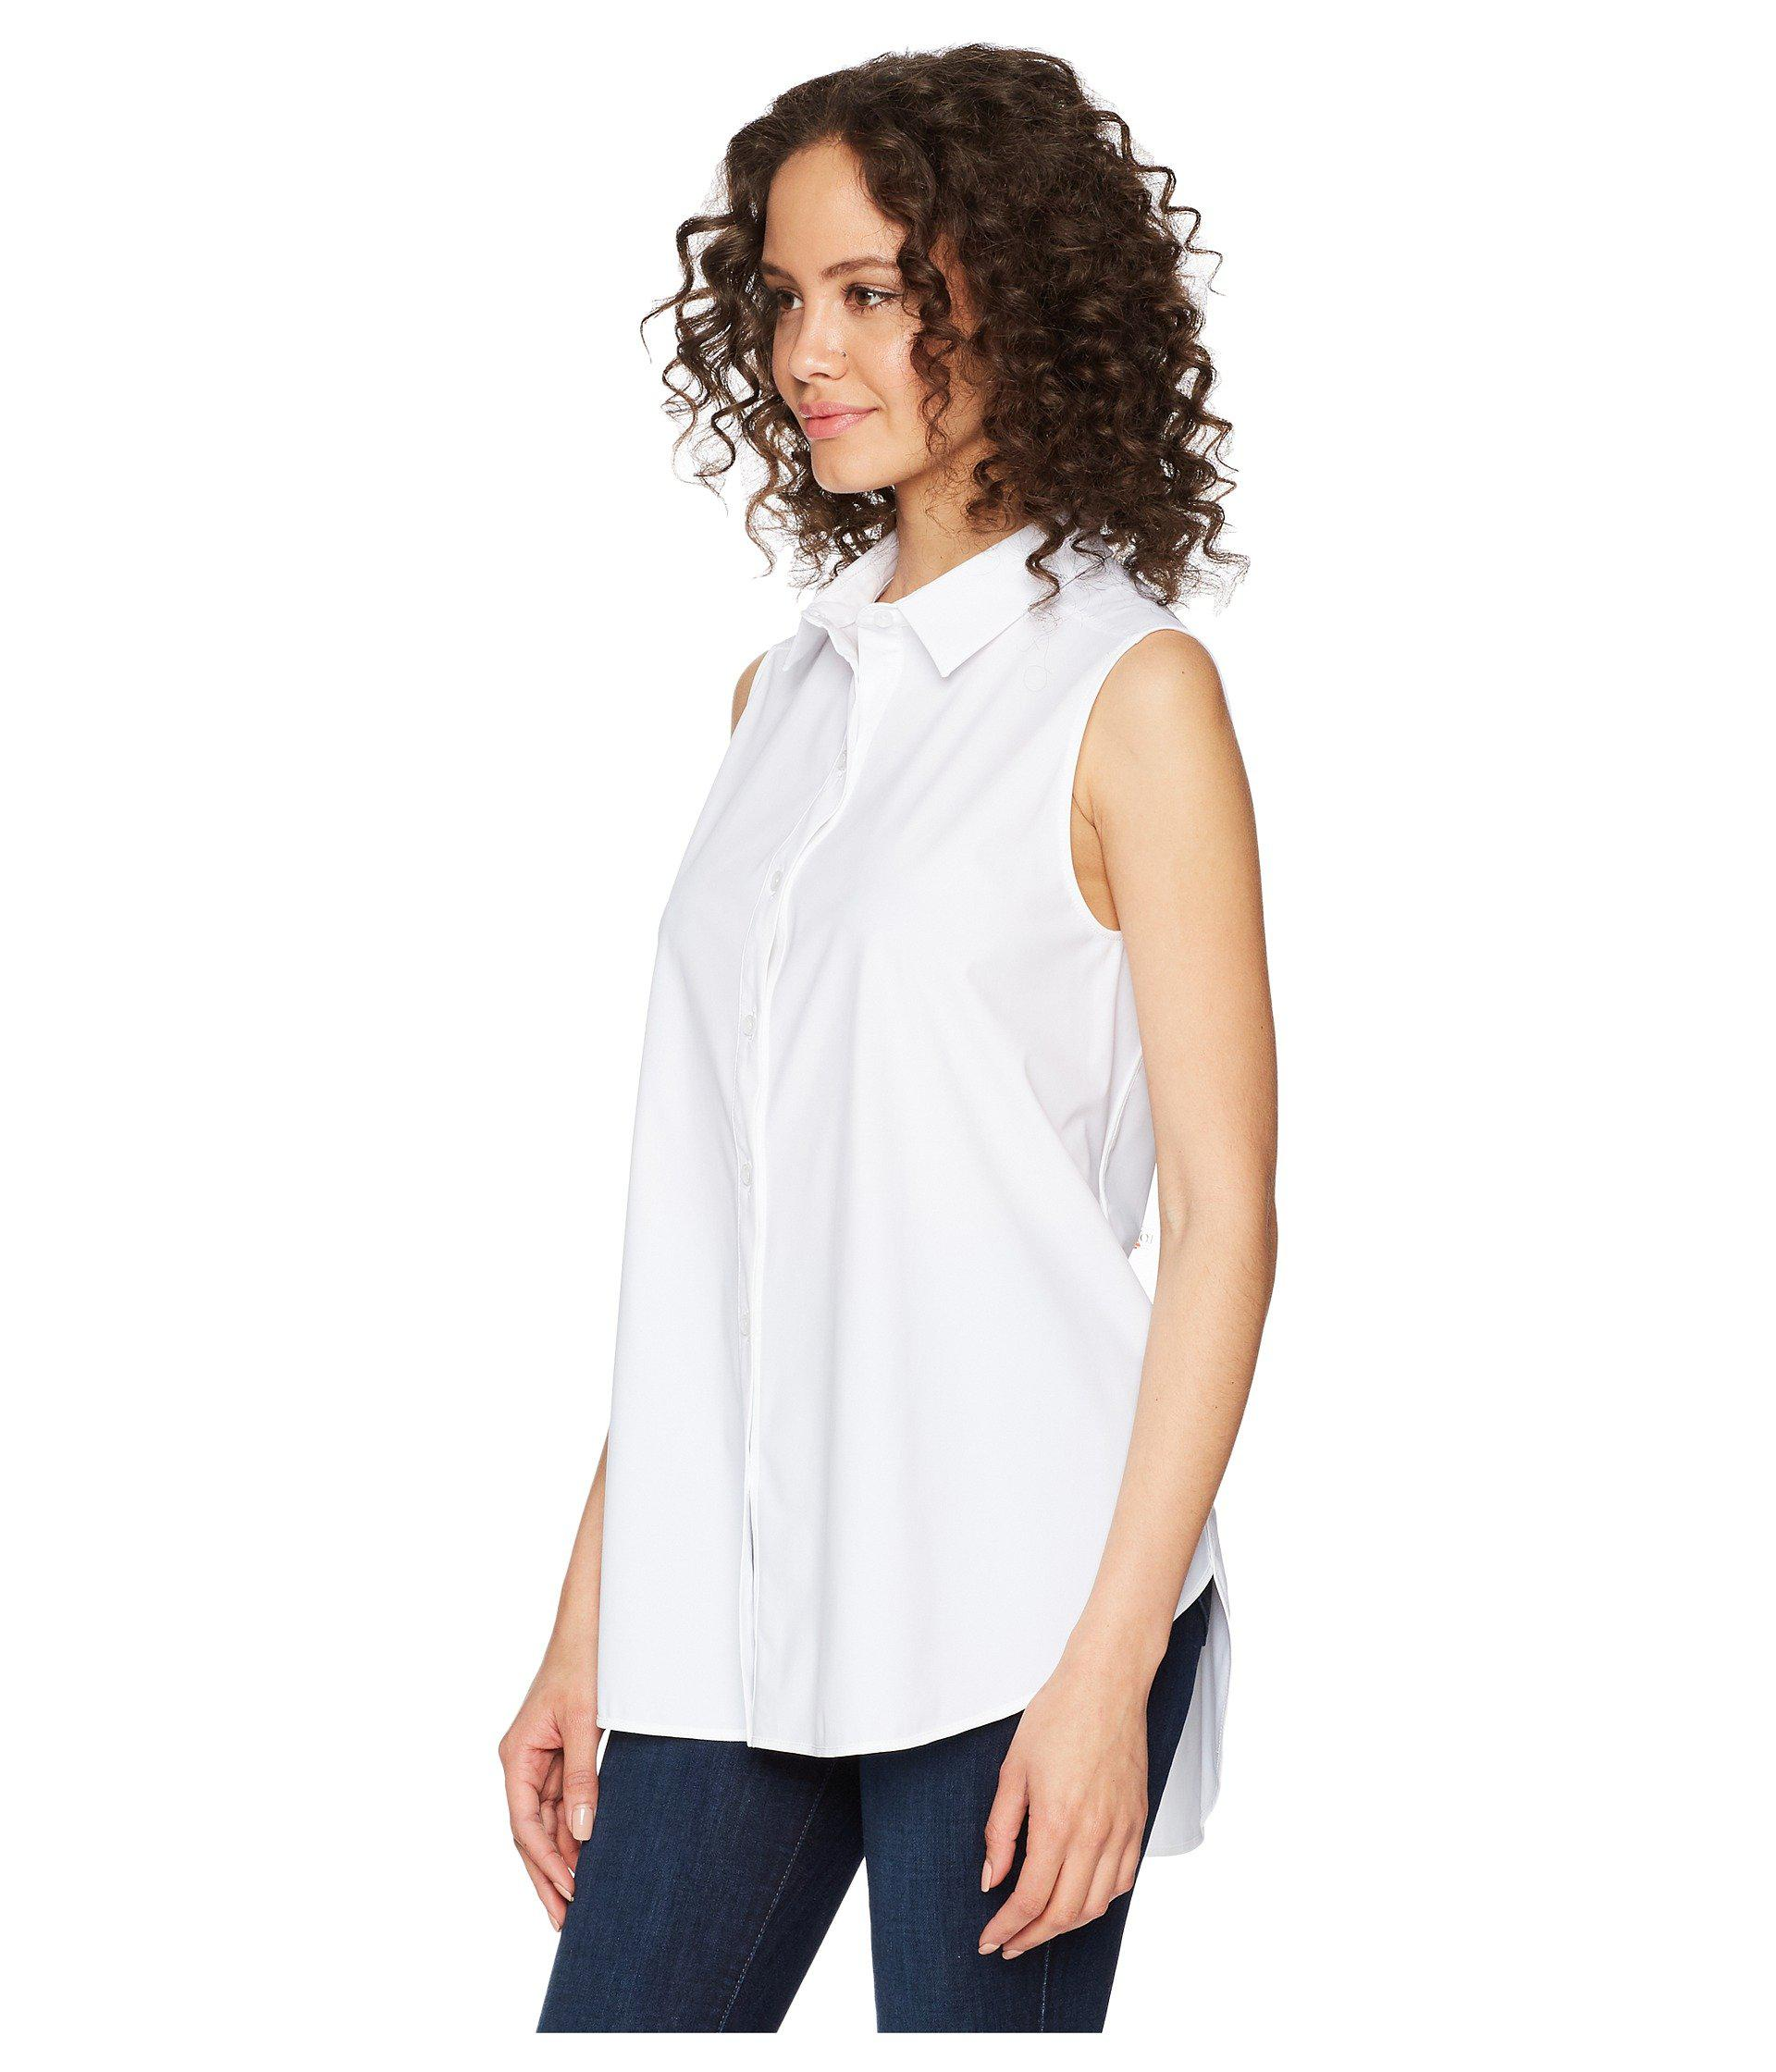 bbd0120ebf19e Lyst - Lyssé June Button Down Sleeveless Top in White